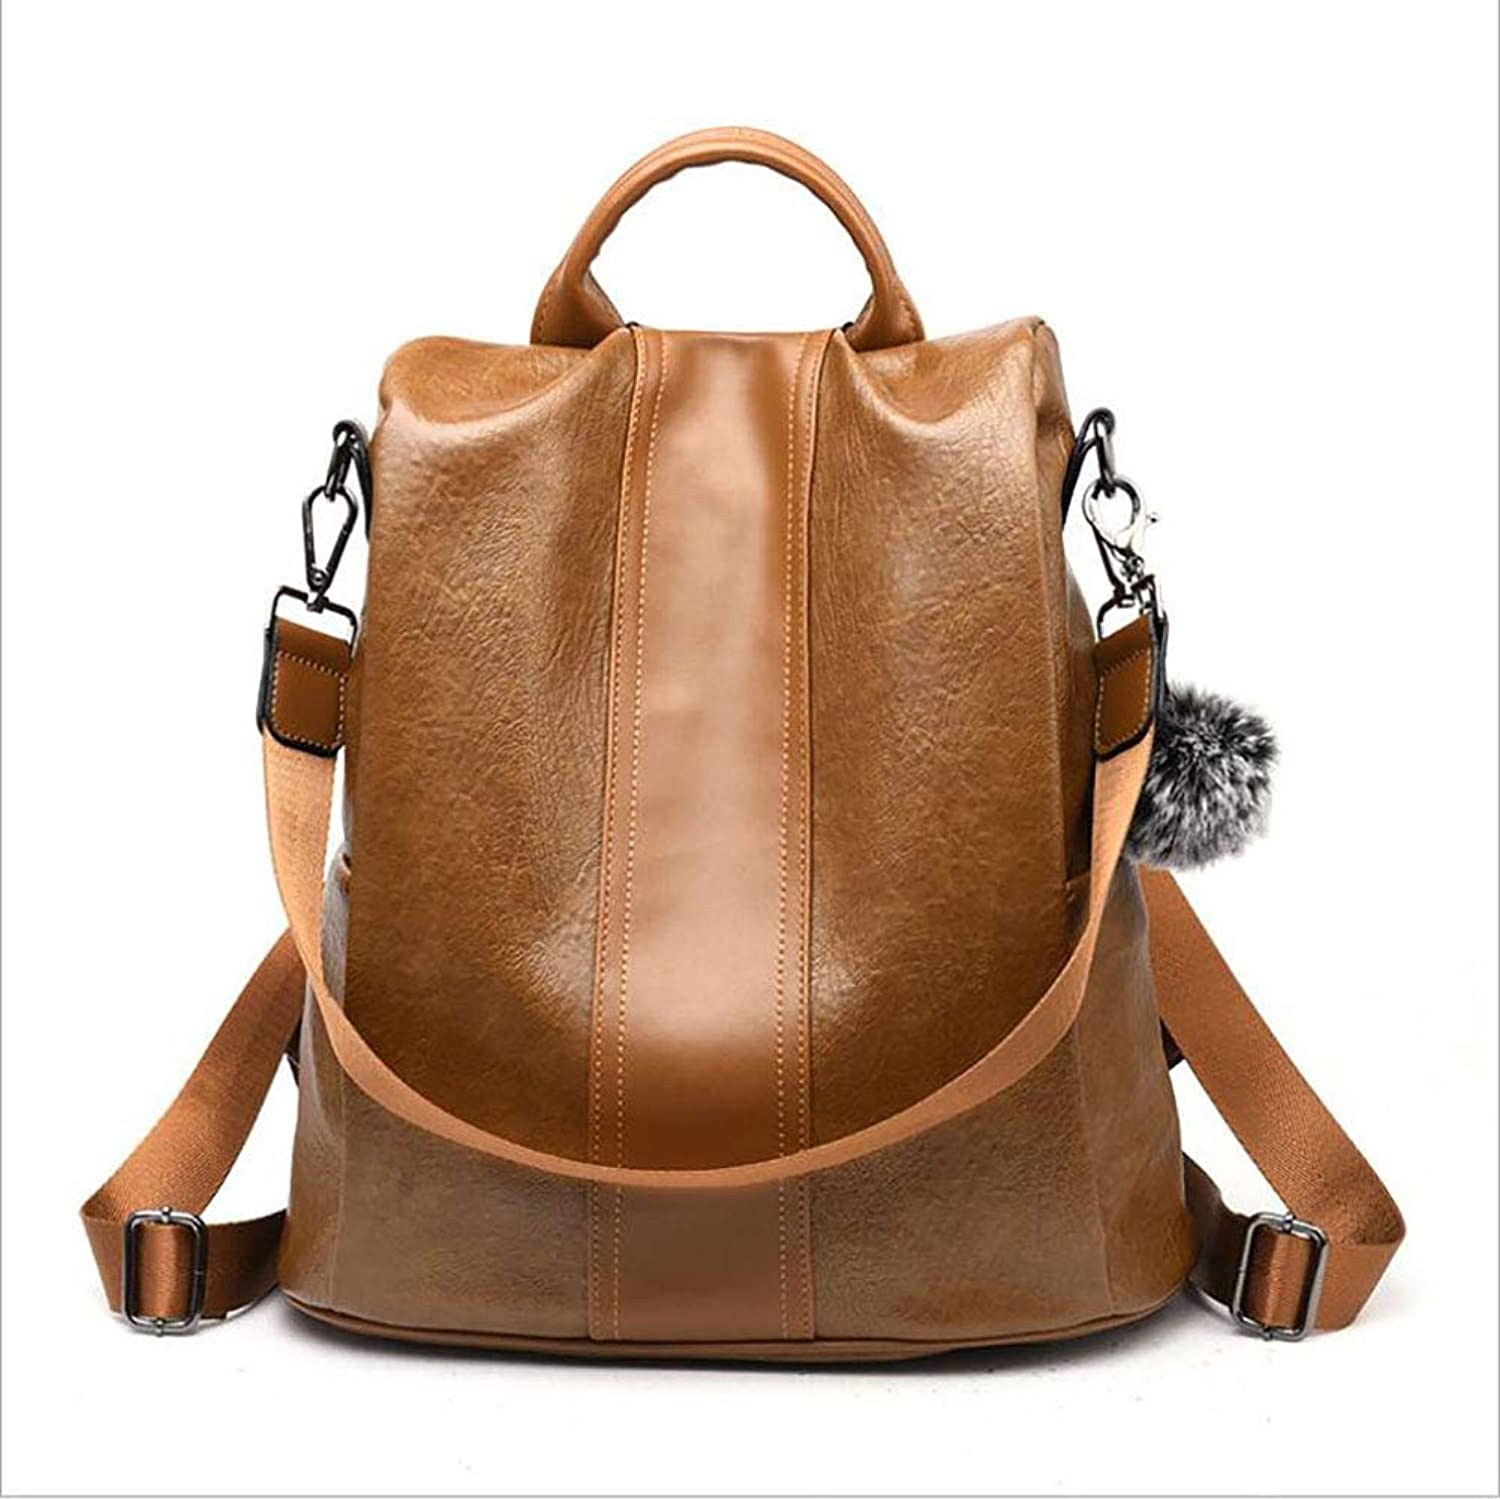 Women's New PU Backpack Bag Ladies Soft Leather Fashion Wild Handbag Simple Travel Messenger Bag Shopping Go to Work Appointment (color   A)